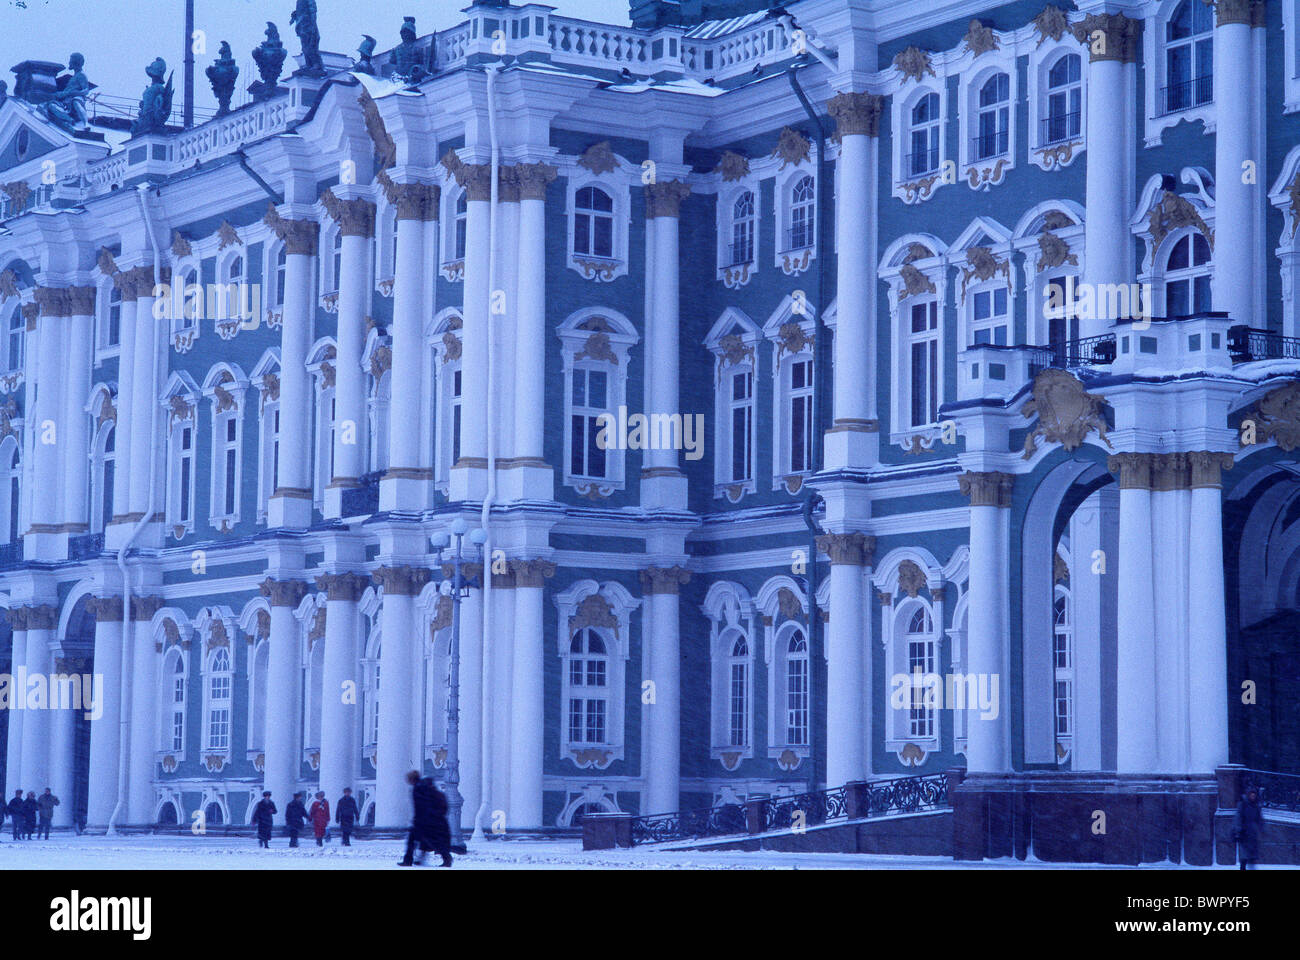 Russia Saint Petersburg Winter Palace State Hermitage Museum Art museum building architecture facade UNESCO W - Stock Image